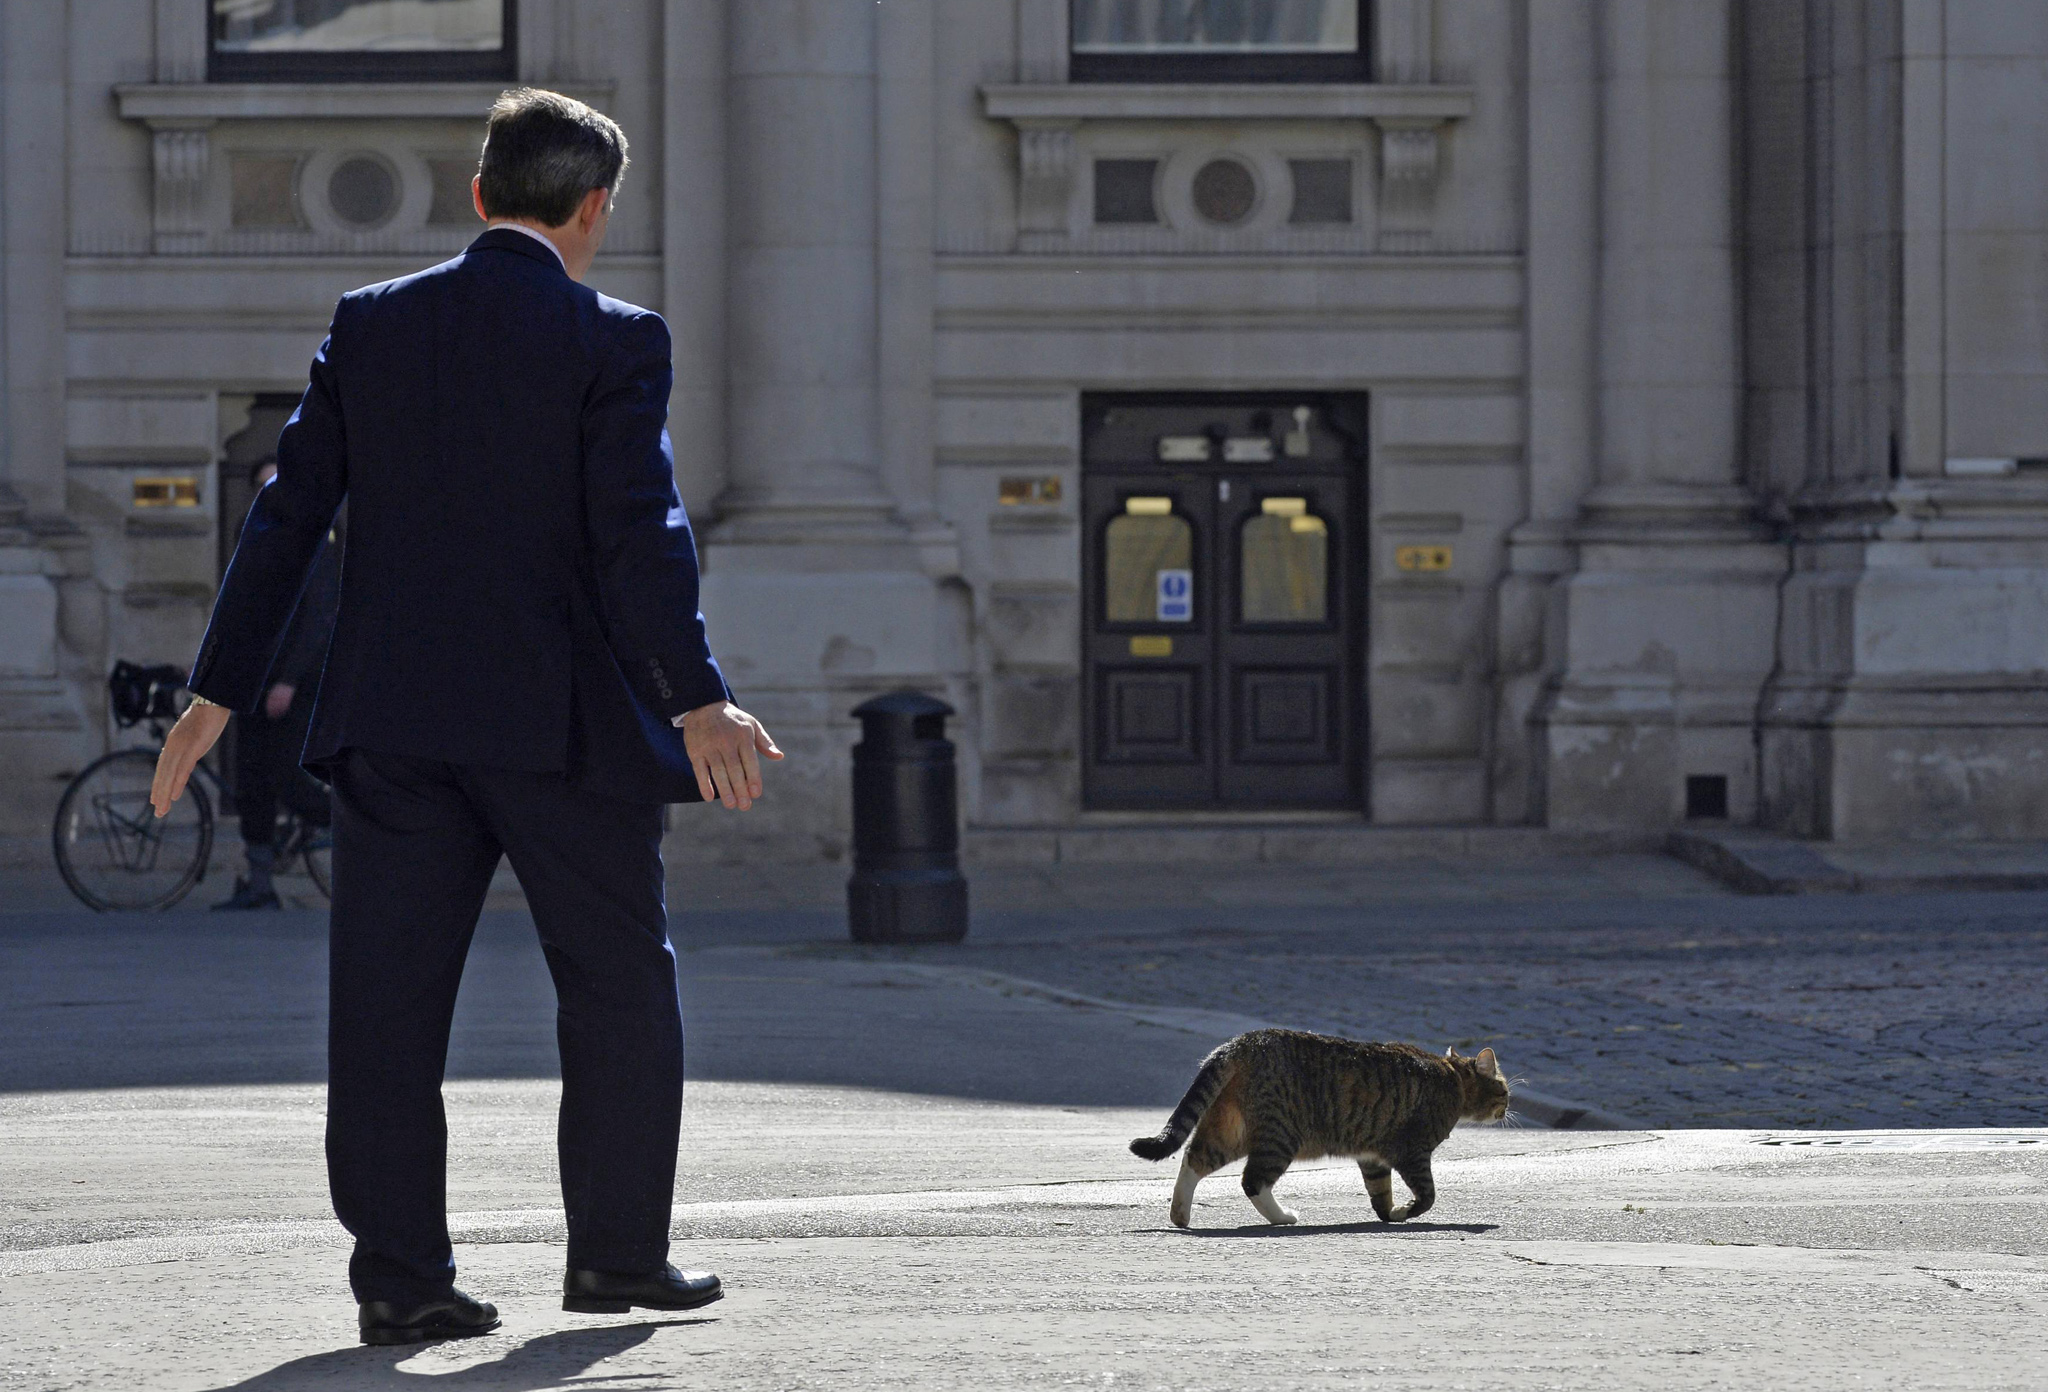 "Britain's Minister of State for Foreign and Commonwealth Affairs Hugh Robertson ushers away ""Freya"" the cat of Britain's Chancellor George Osborne at The Foreign Office in London...Britain's Minister of State for Foreign and Commonwealth Affairs Hugh Robertson ushers away ""Freya"", the cat of Britain's Chancellor George Osborne, as he waits to greet attendees of a Friends of Syria meeting at The Foreign Office in London May 15, 2014. REUTERS/Toby Melville (BRITAIN - Tags: POLITICS CONFLICT ANIMALS)"